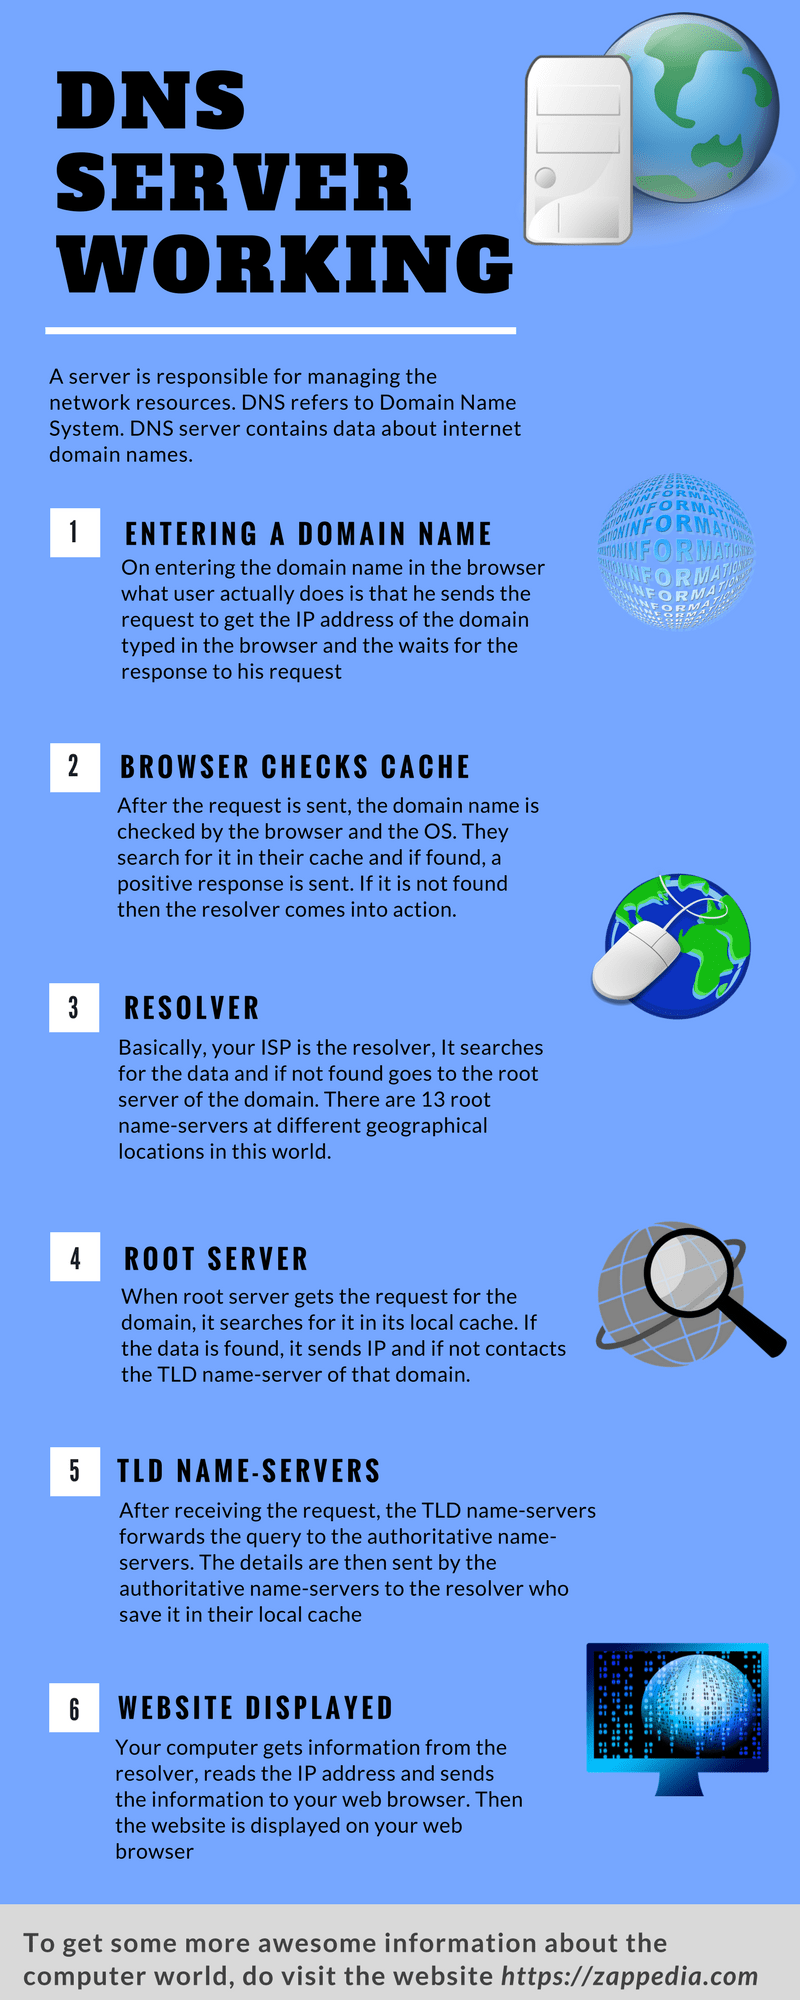 working of dns server infographic